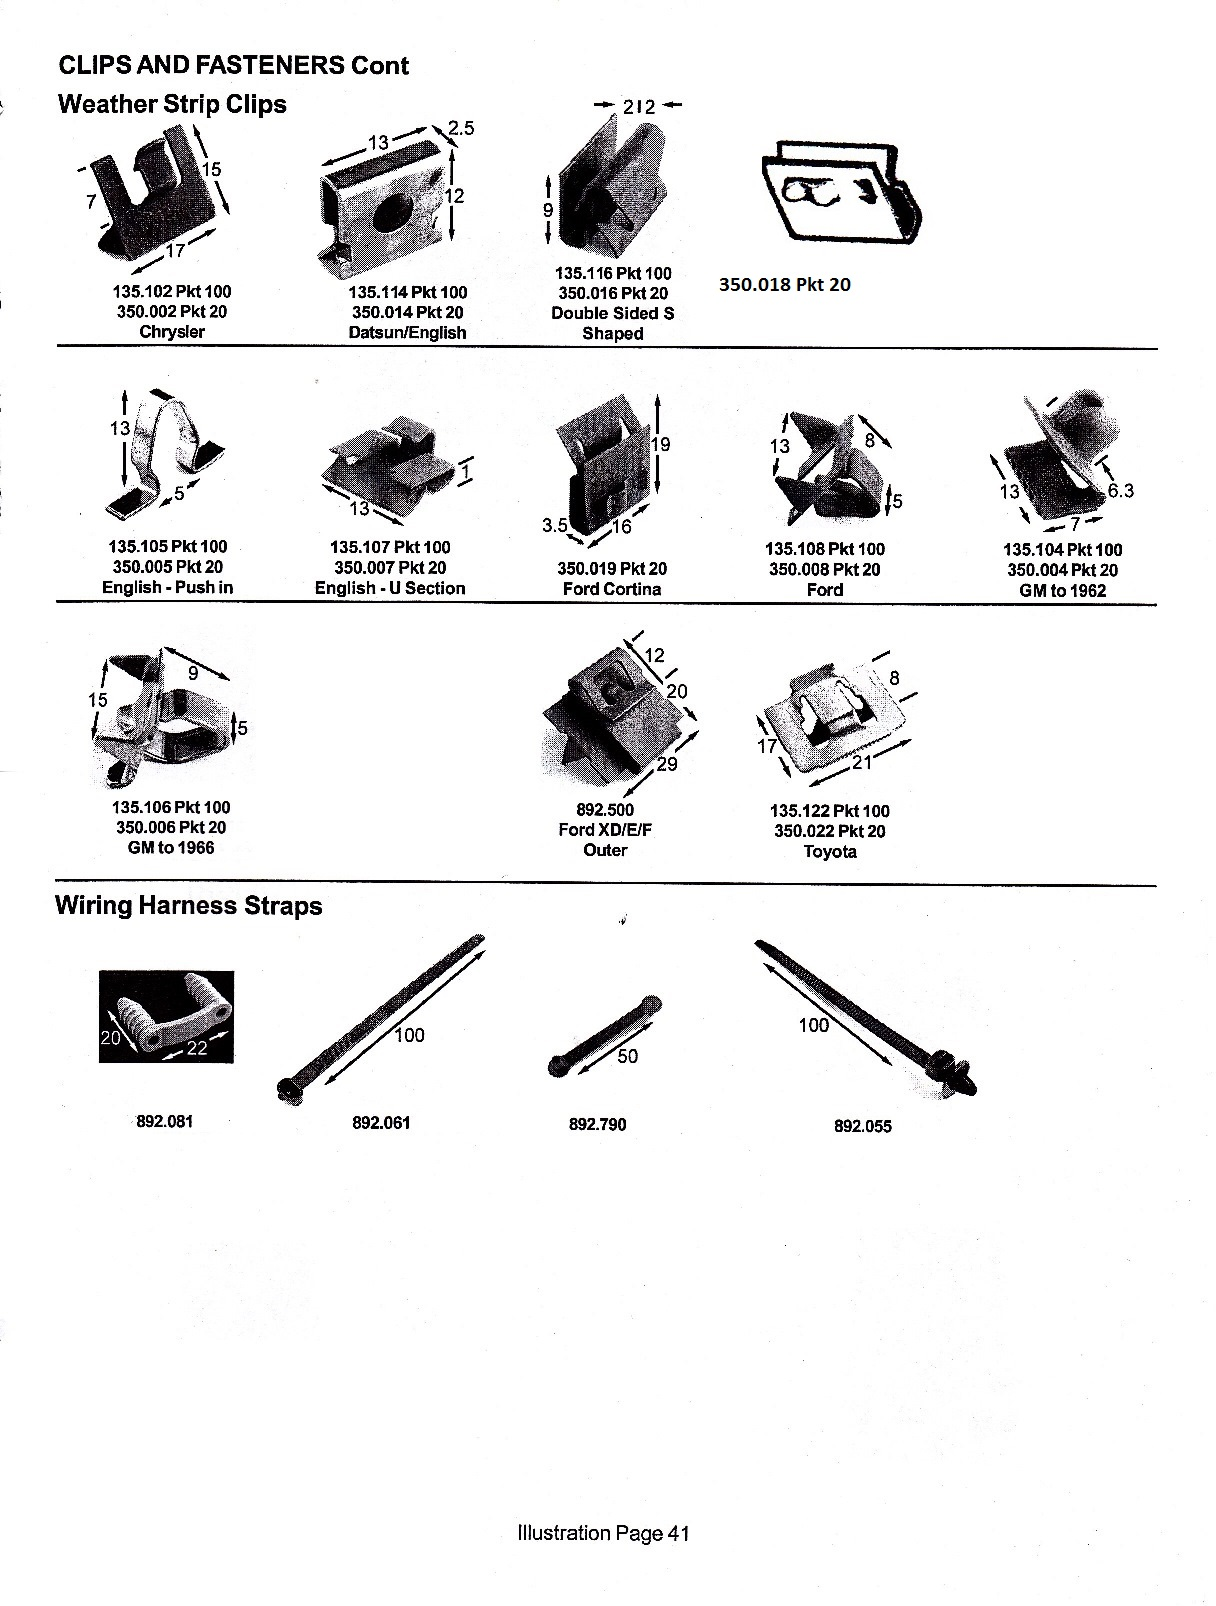 scott old auto rubber catalogue clips fasteners weather strip clips wiring harness straps page 41